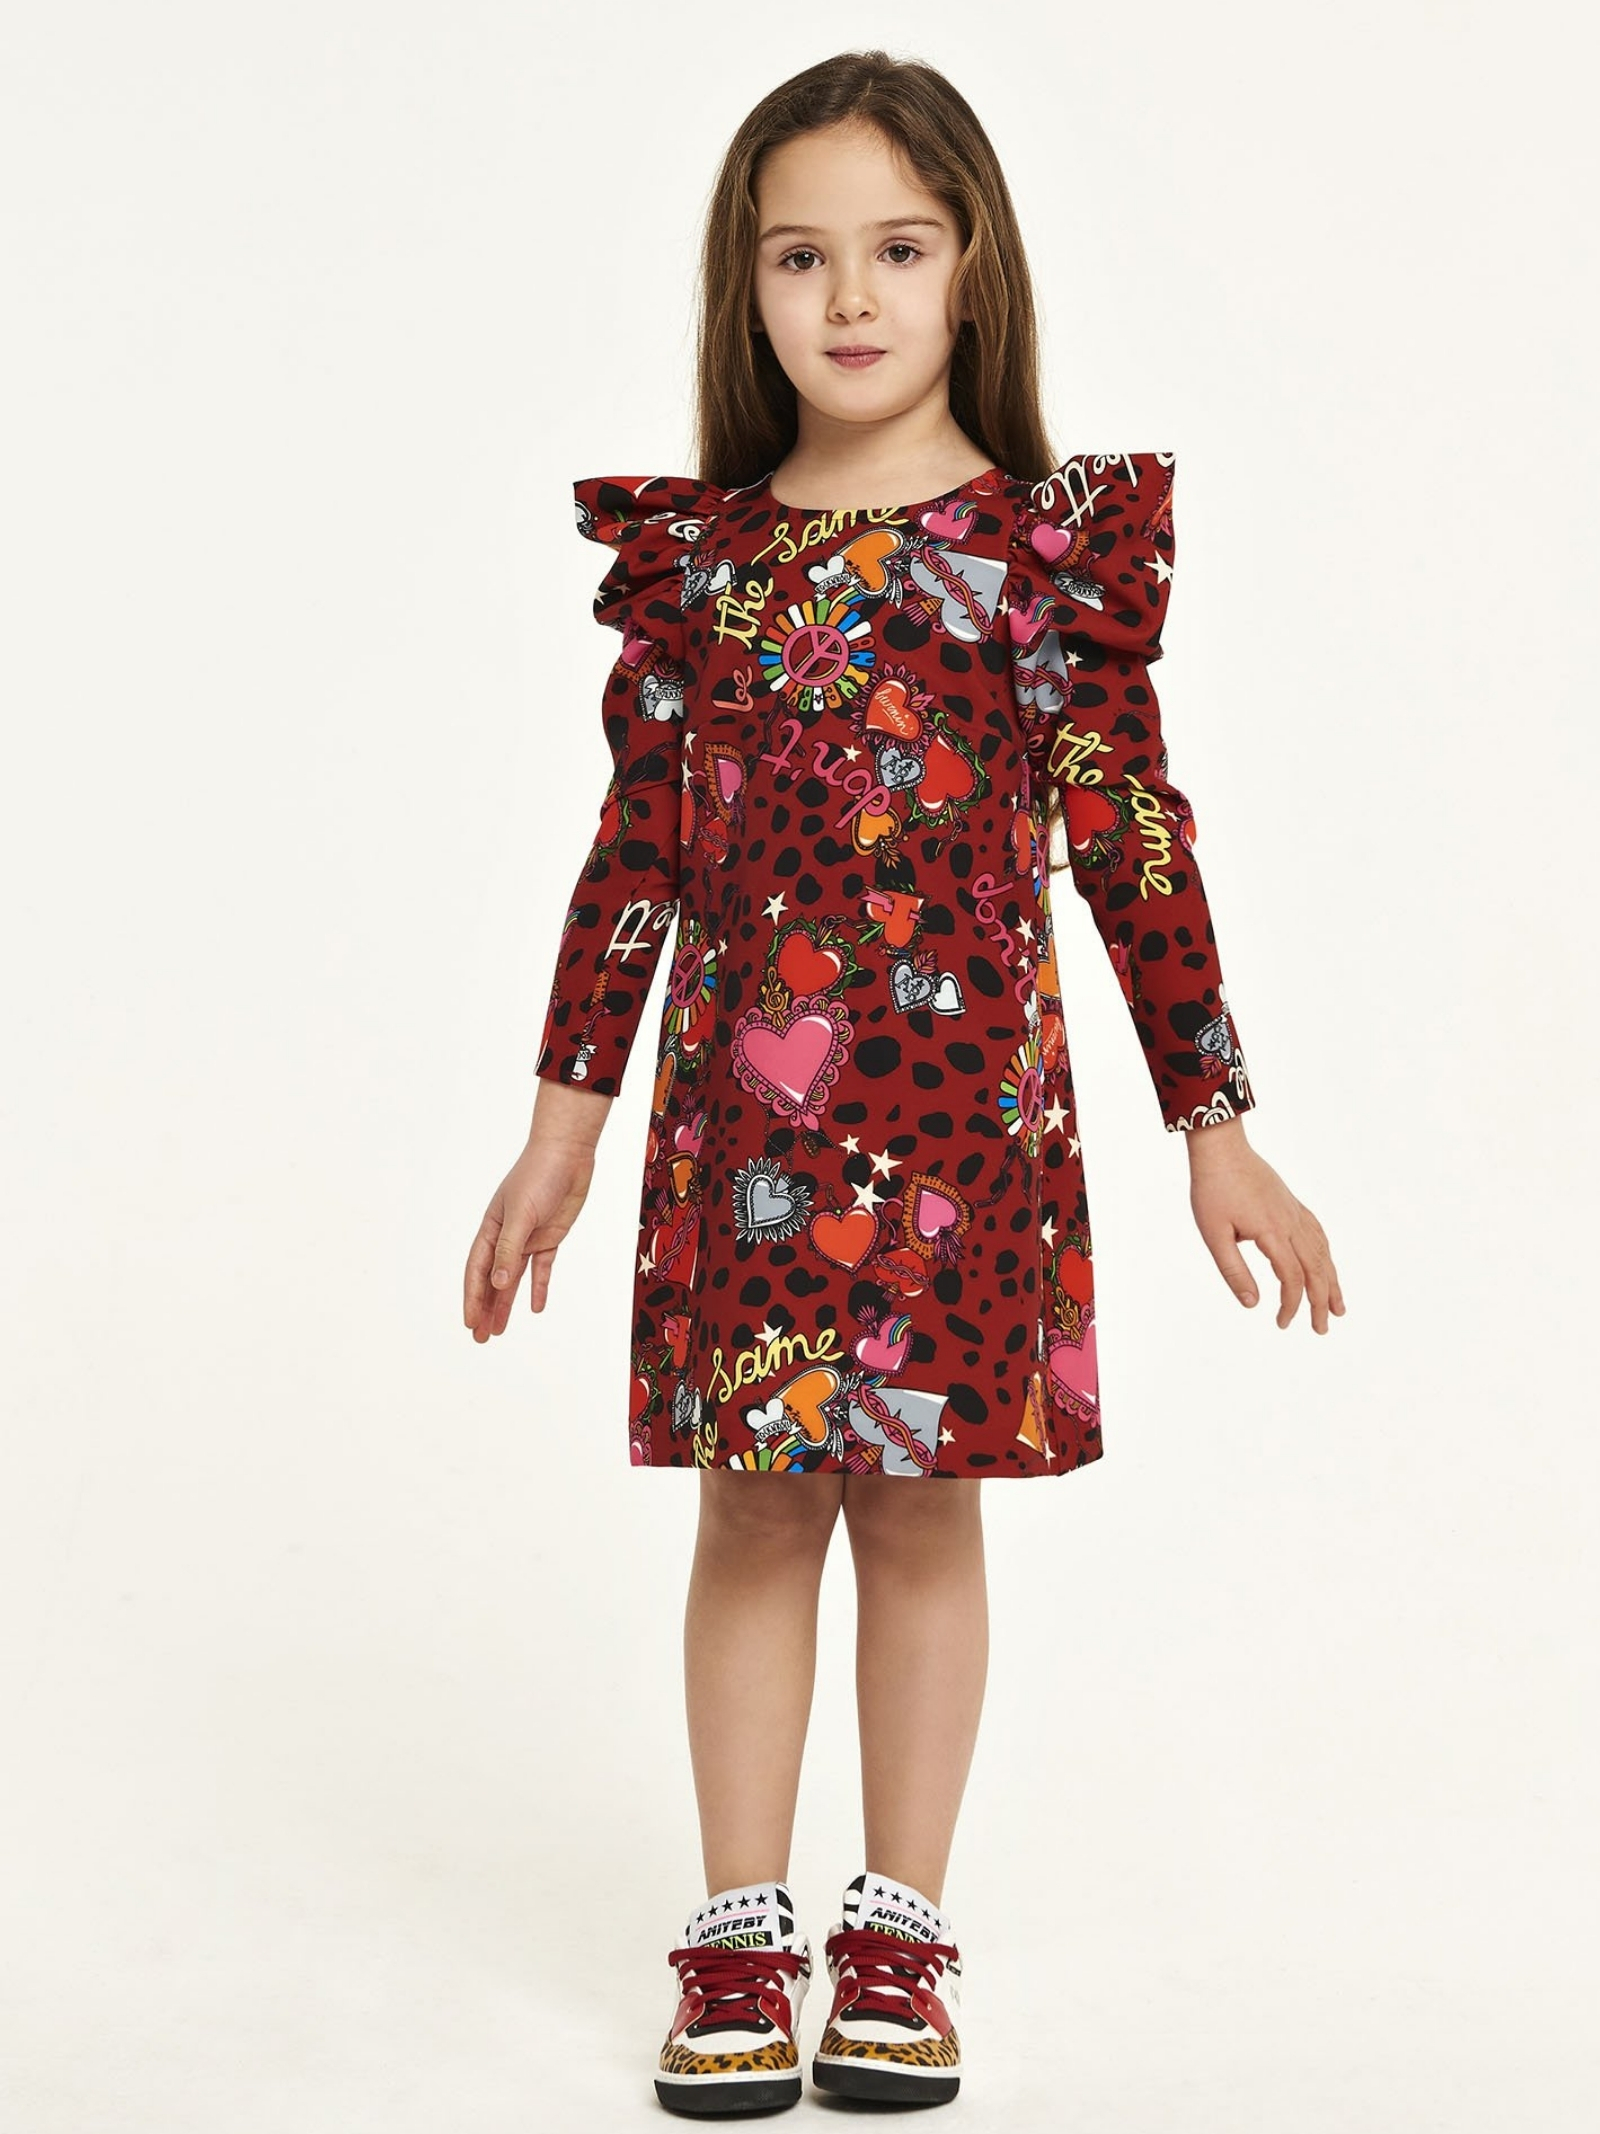 Rock Dress for Girls ANIYE BY GIRL | Clothes | 11120400111